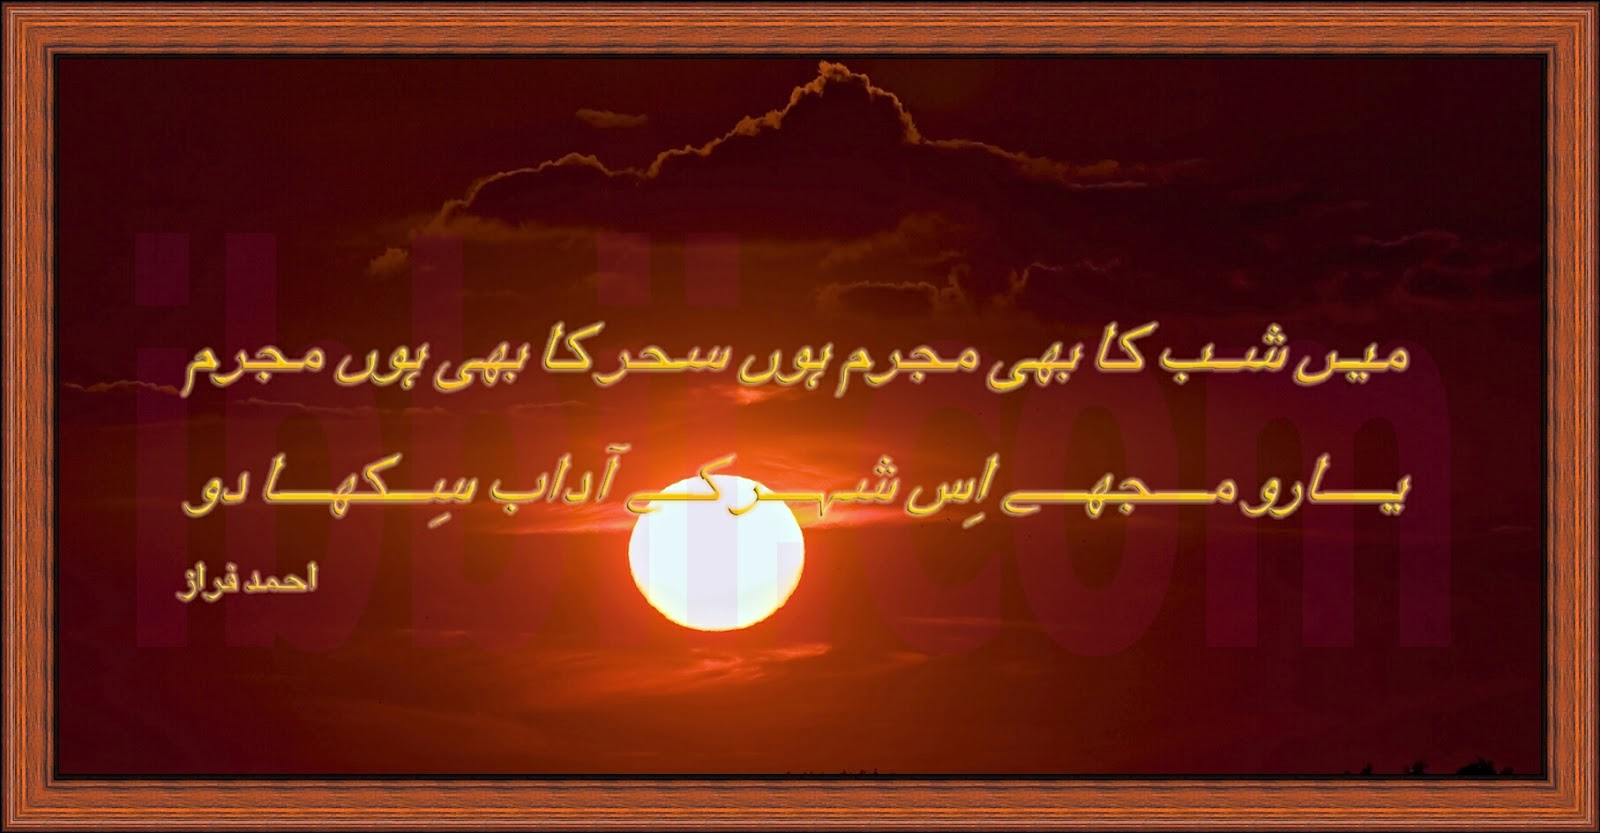 http://2.bp.blogspot.com/-oa03tRp8pyA/UFBs7nAreKI/AAAAAAAADIw/9tVtF2_XRDI/s1600/Sad+Urdu+sad+poetry+wallpapers+%2814%29.jpg